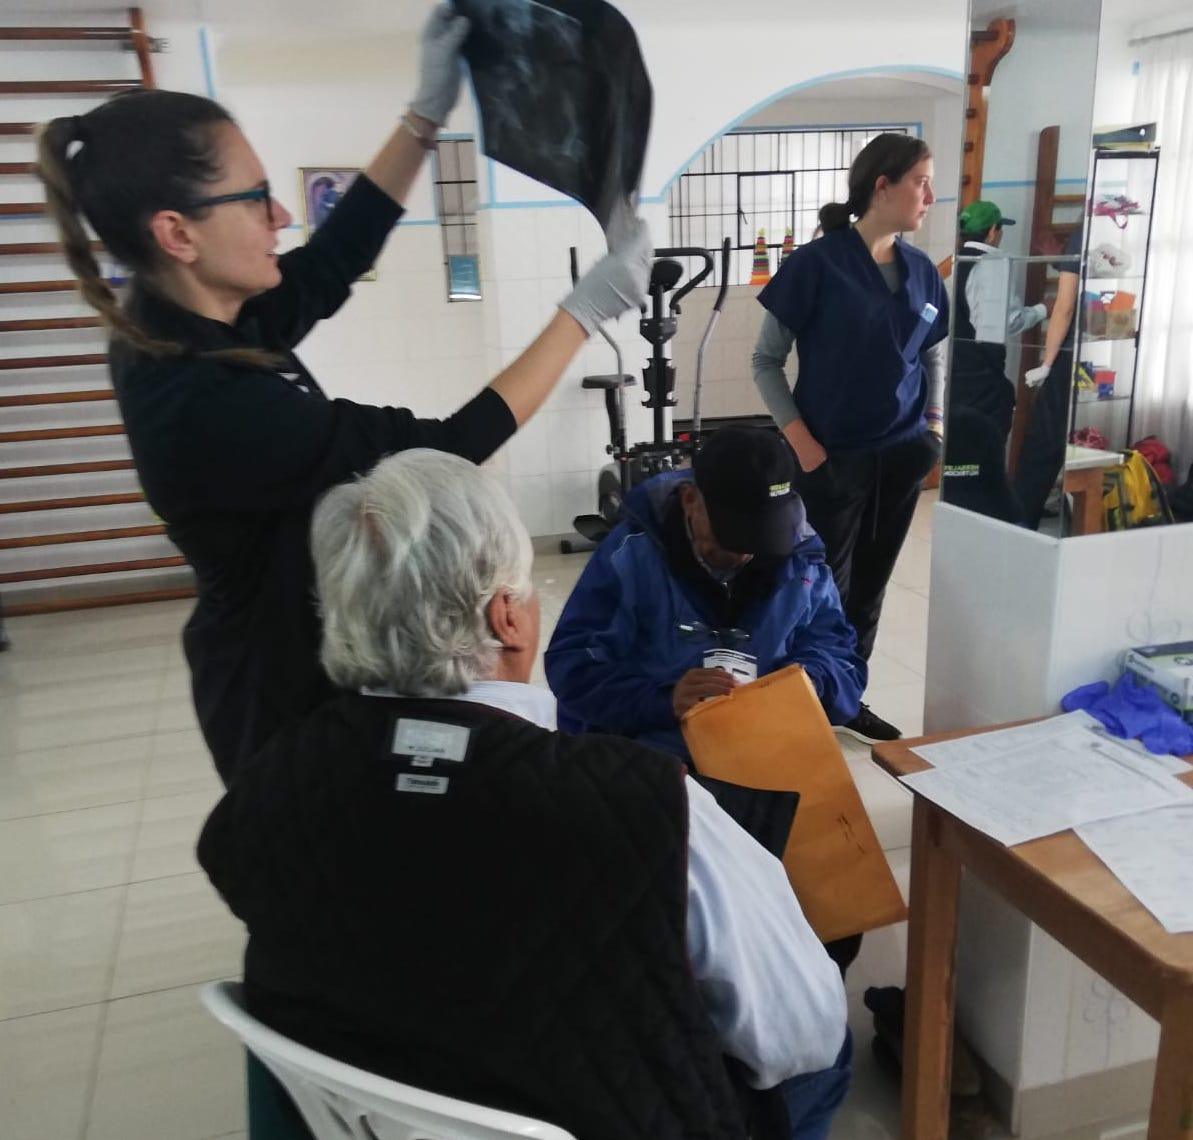 Volunteer Medical Group (10) Peru 🇵🇪 Cusco... 3rd day medical providers at the largest Senior Care center in Cusco over 300 seniors. Each patient got a bag with medication and reading glasses.  https://t.co/FL6CW5qsqx https://t.co/C7jqpVHw9T